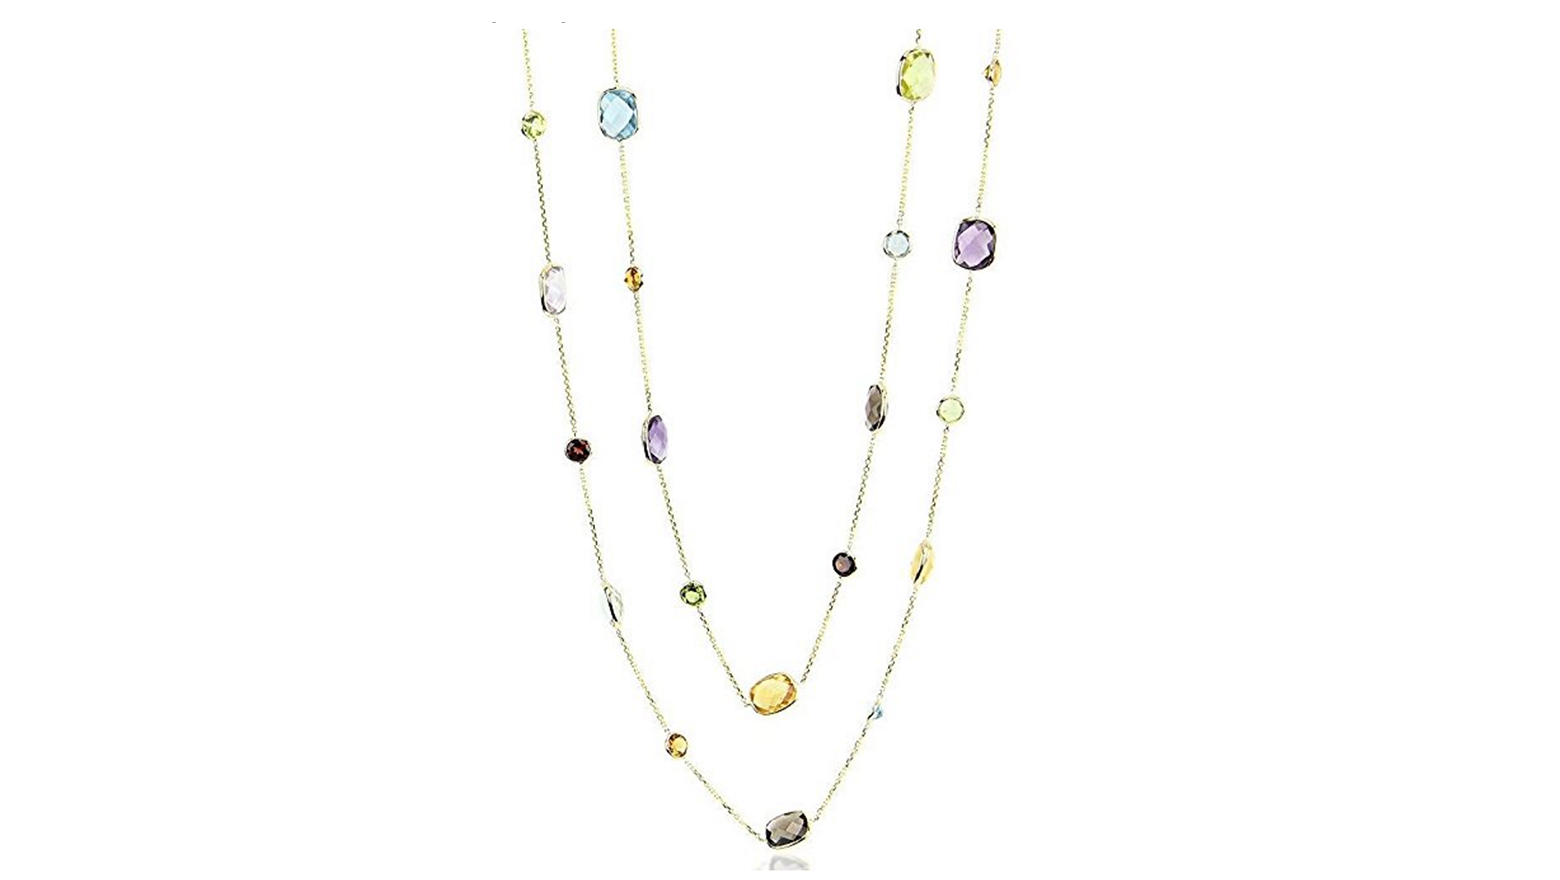 Amazon, cyber monday, cyber monday sales, cyber monday deals, gemstone necklace, gold necklace, jewelry